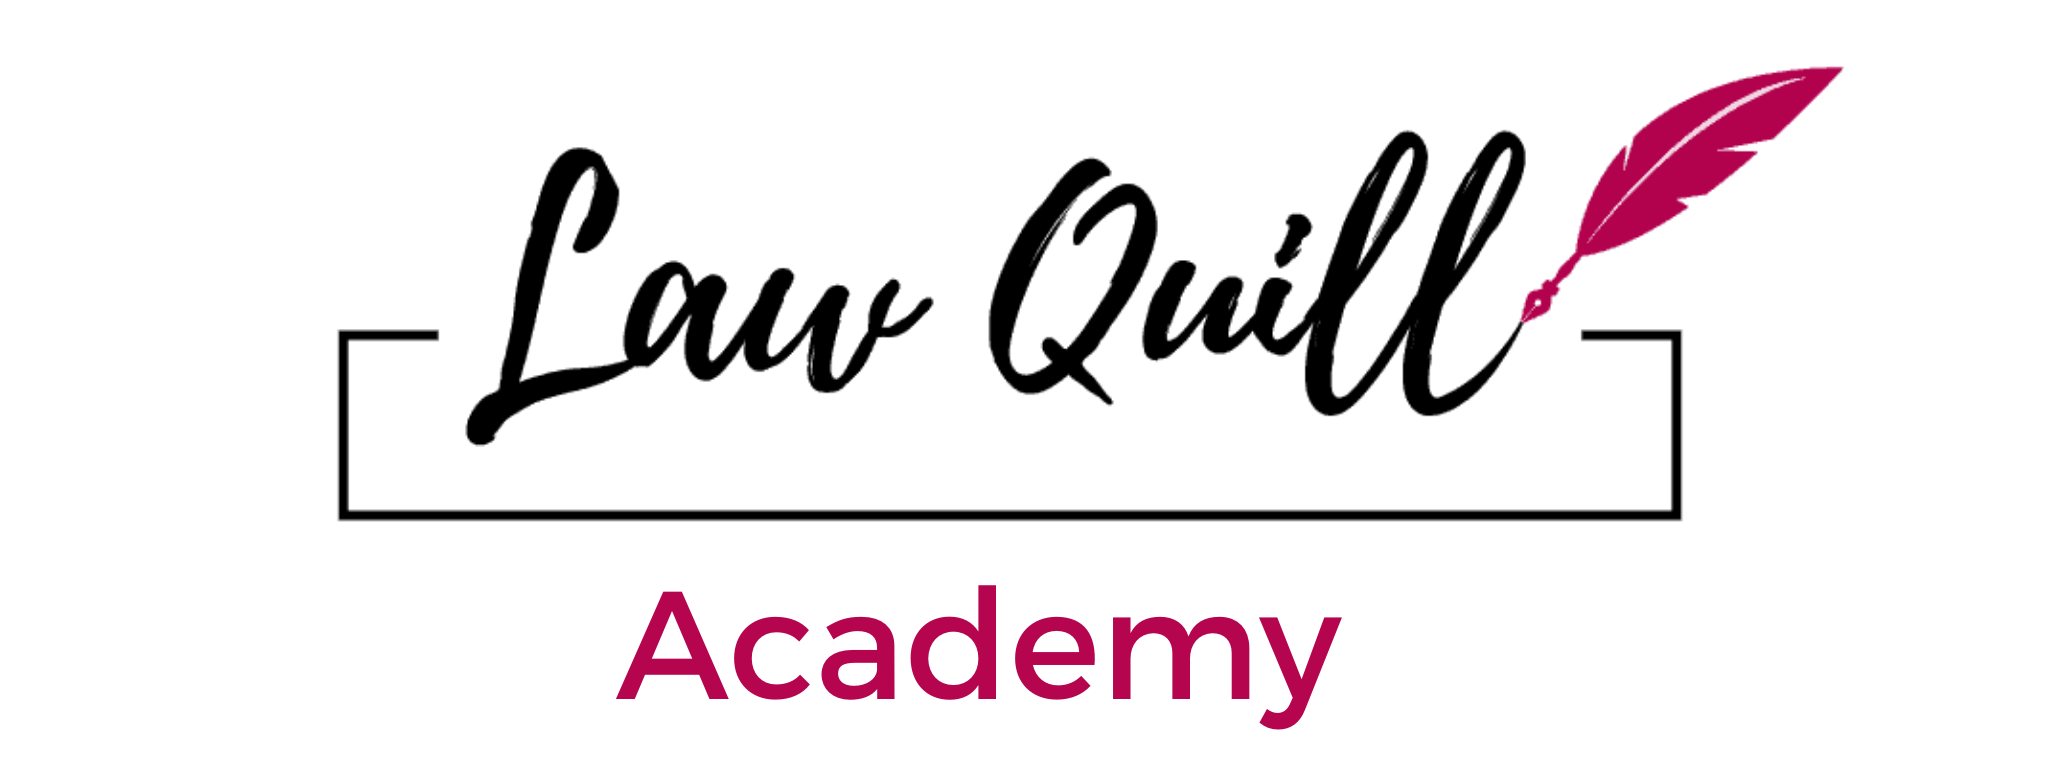 Law Quill Academy